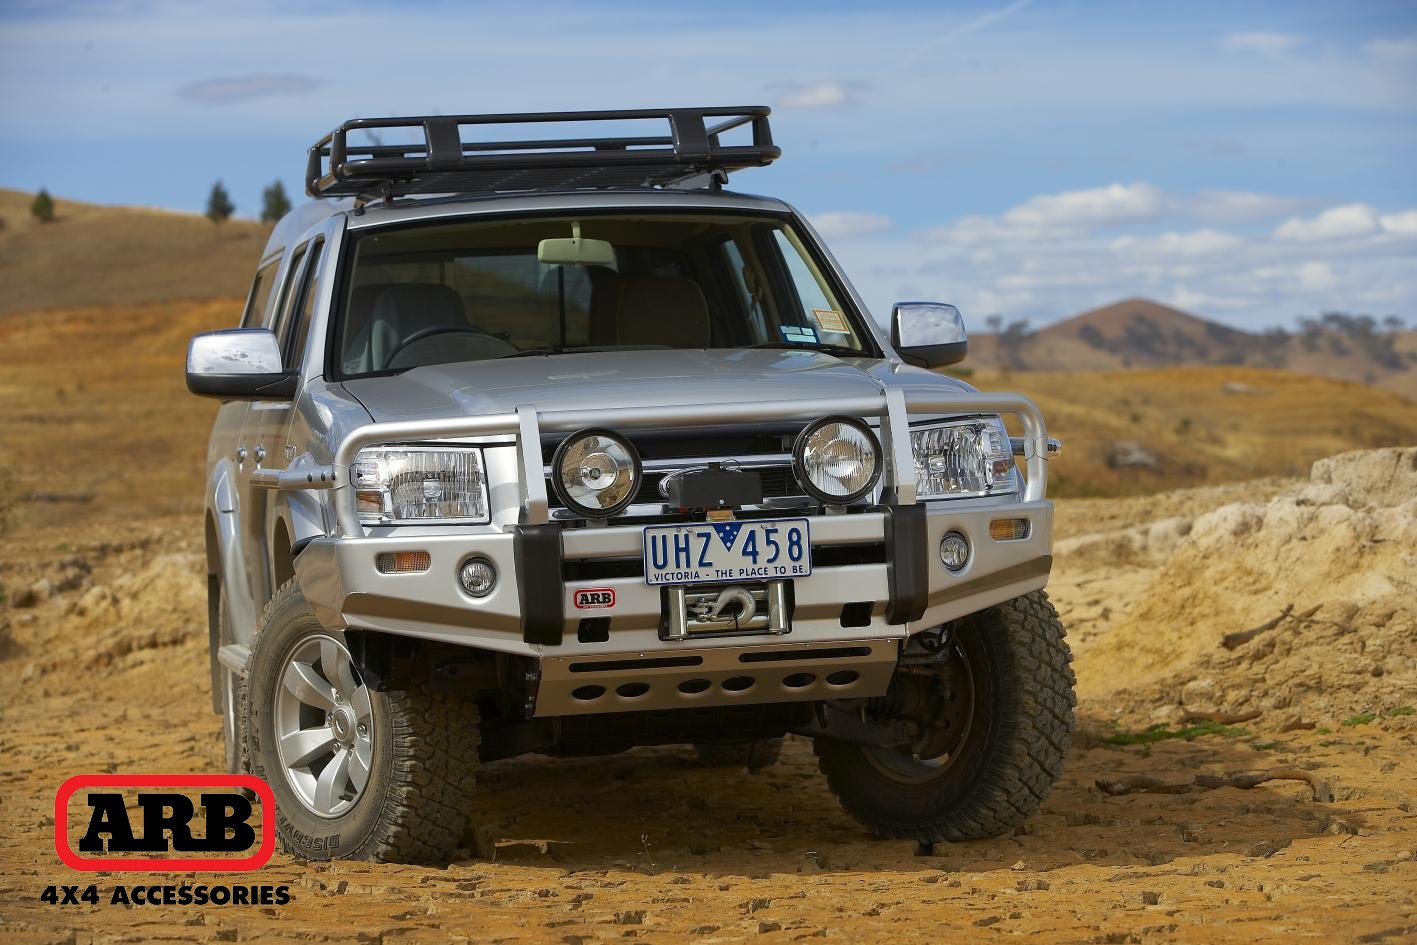 Photography by Offroadimages.com.au © 2007